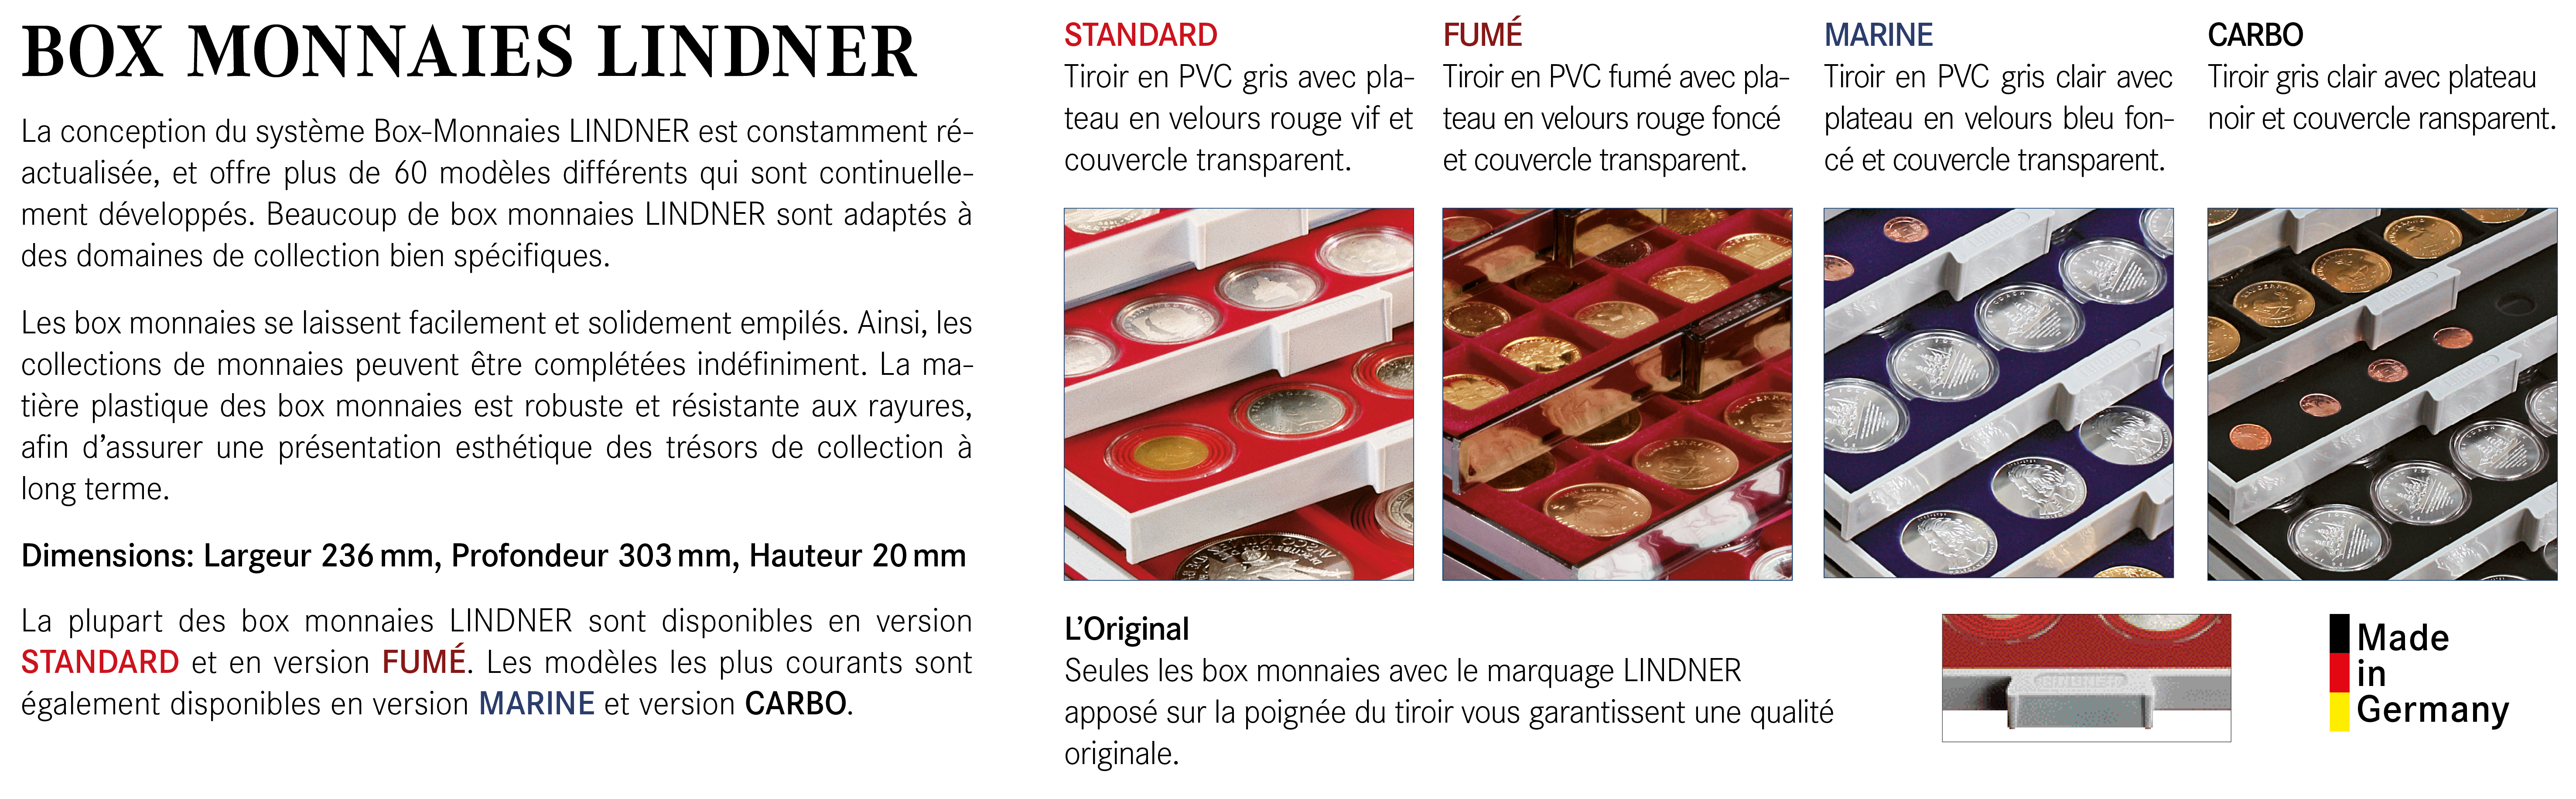 Lindner Box Monnaies